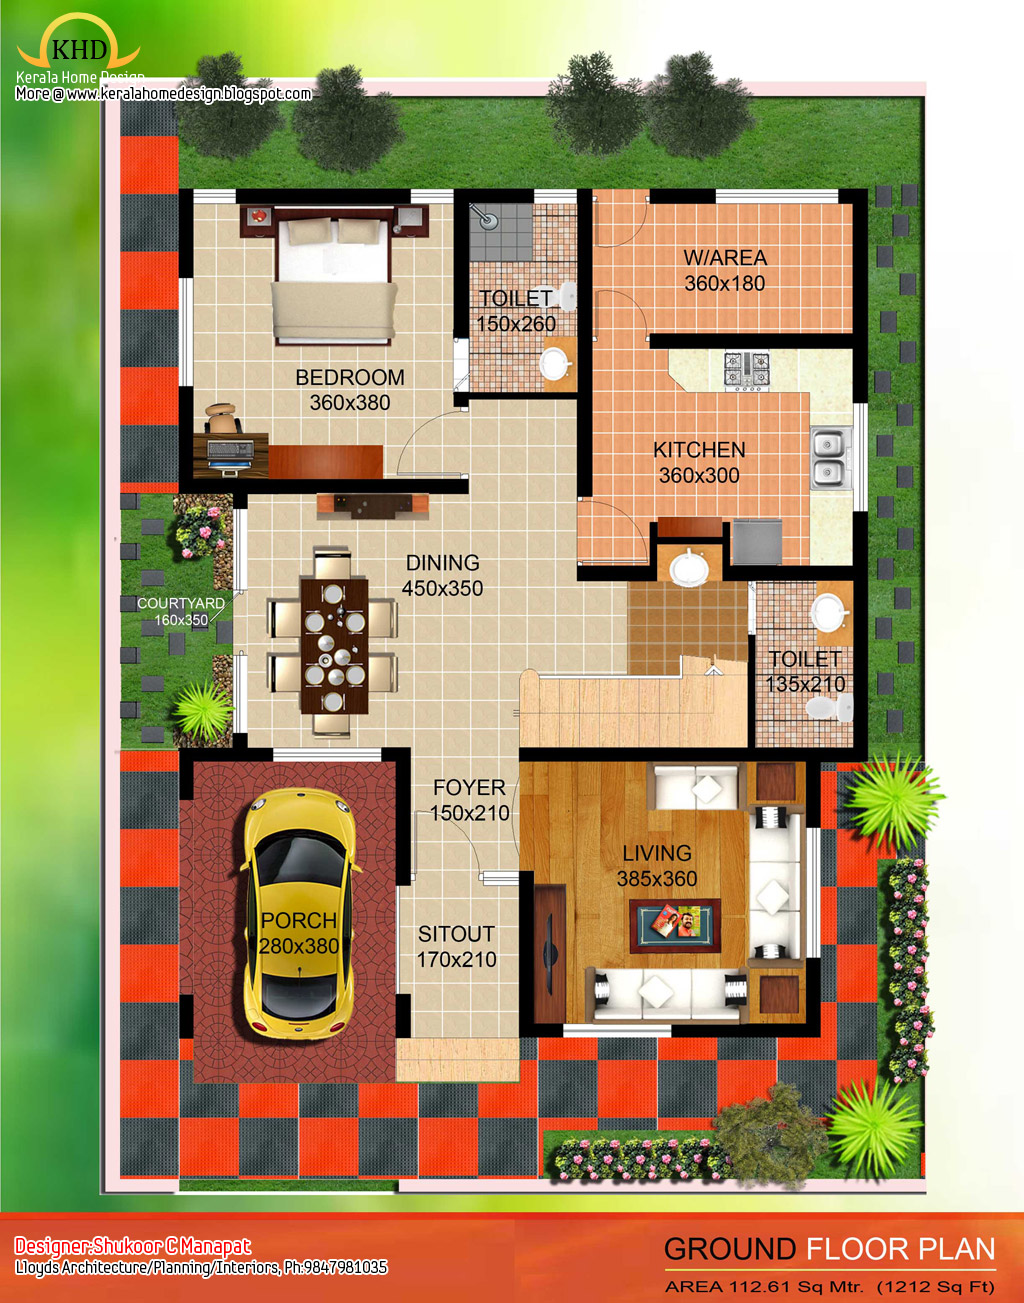 2035 Sq. Ft 4 Bedroom Contemporary Villa Elevation and ...